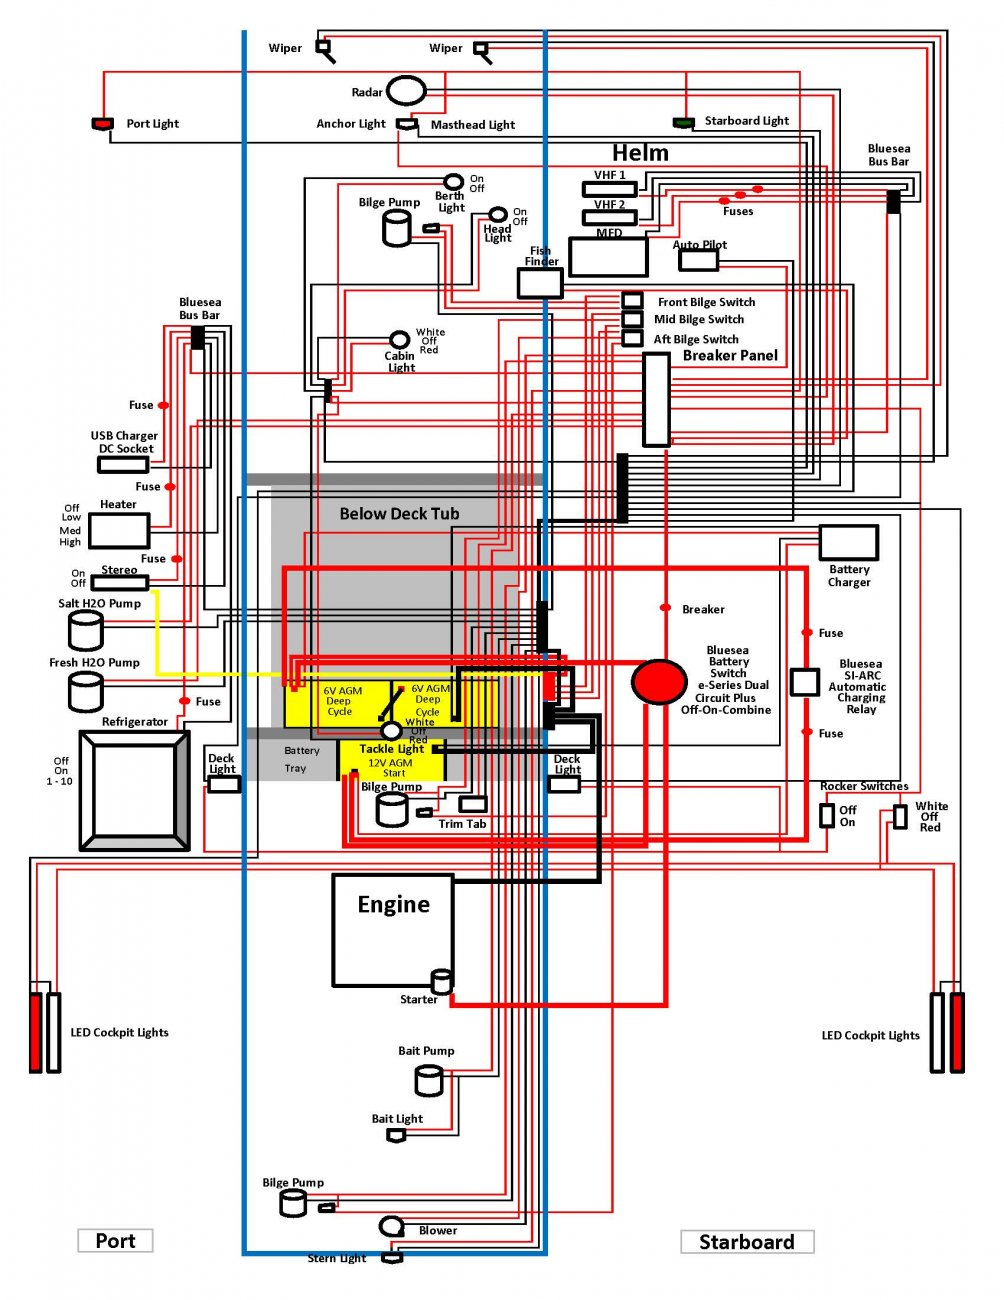 Diagram Omc Boat Wiring Diagram Picture Schematic Full Version Hd Quality Picture Schematic Pipediagram Eyepower It